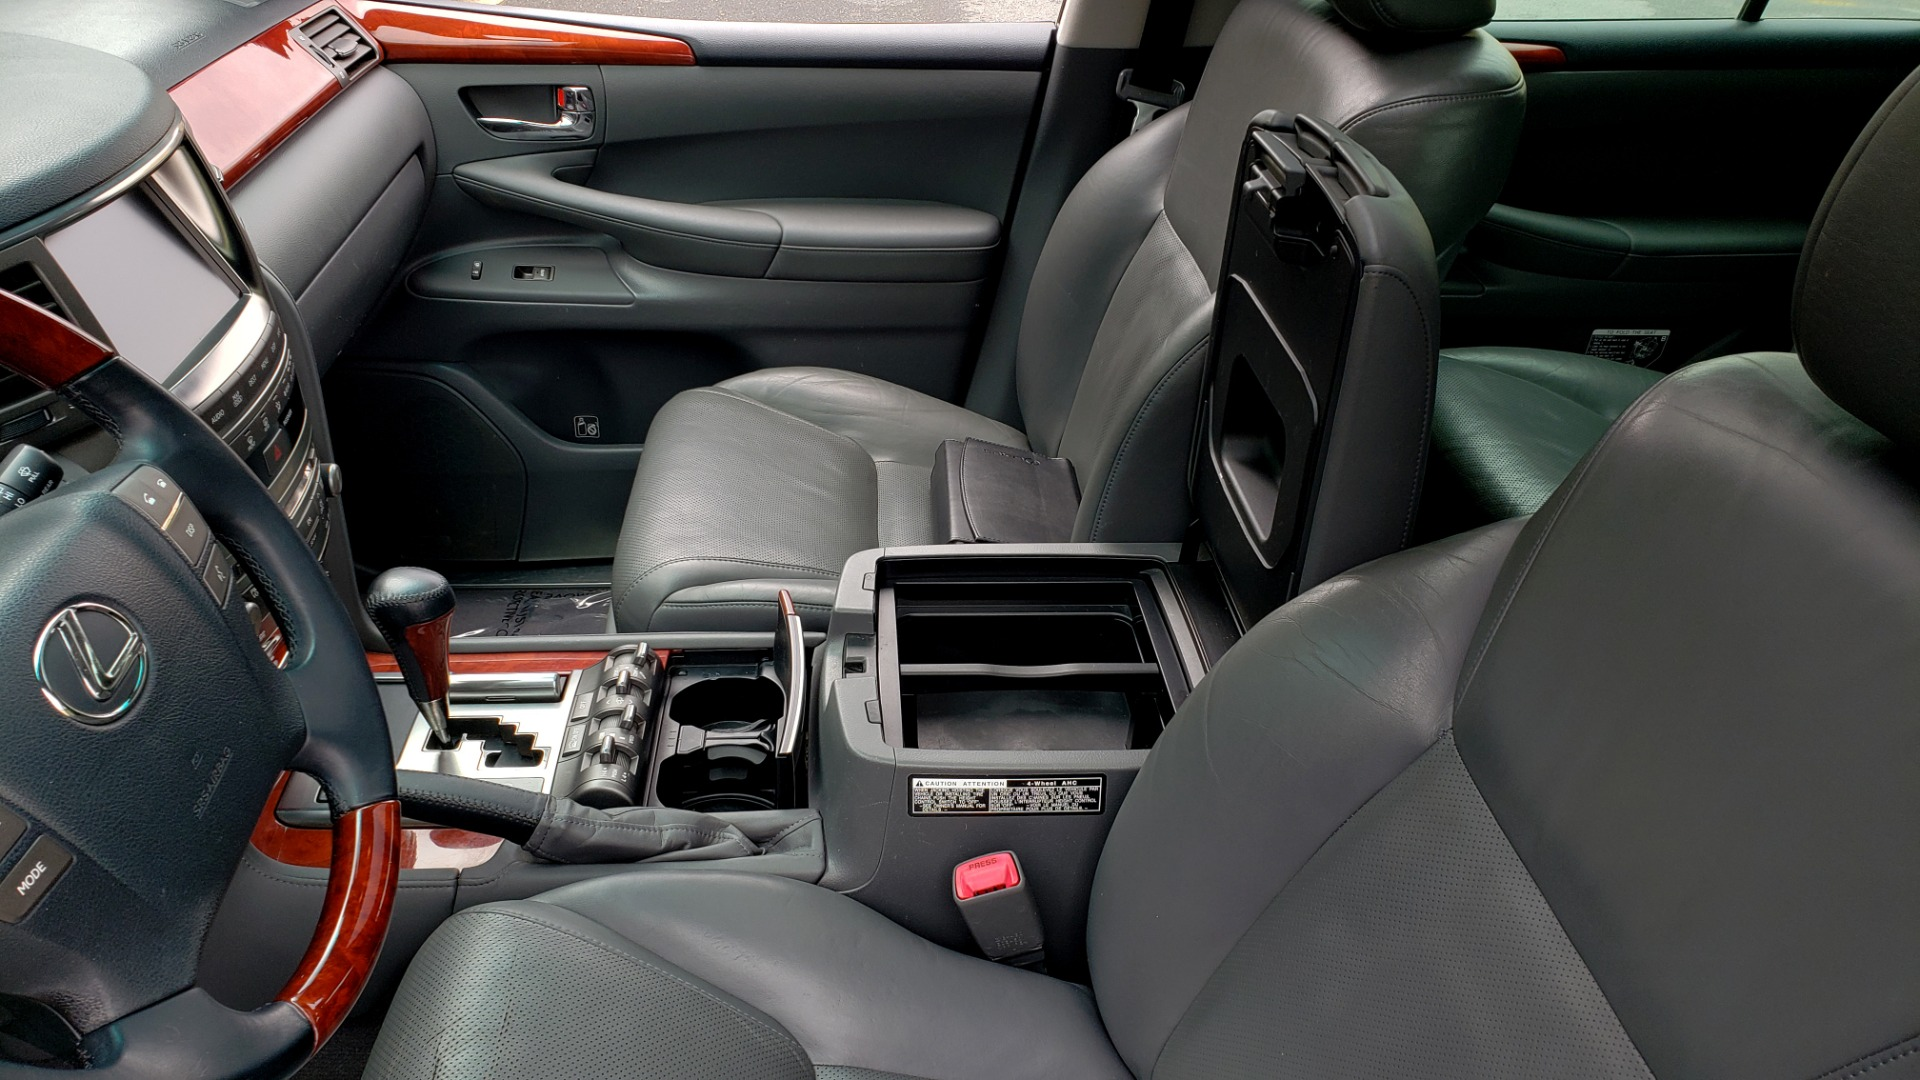 Used 2008 Lexus LX 570 4WD / TECH PKG / NAV / SUNROOF / MARK LEVINSON / PARK ASST for sale $22,995 at Formula Imports in Charlotte NC 28227 59